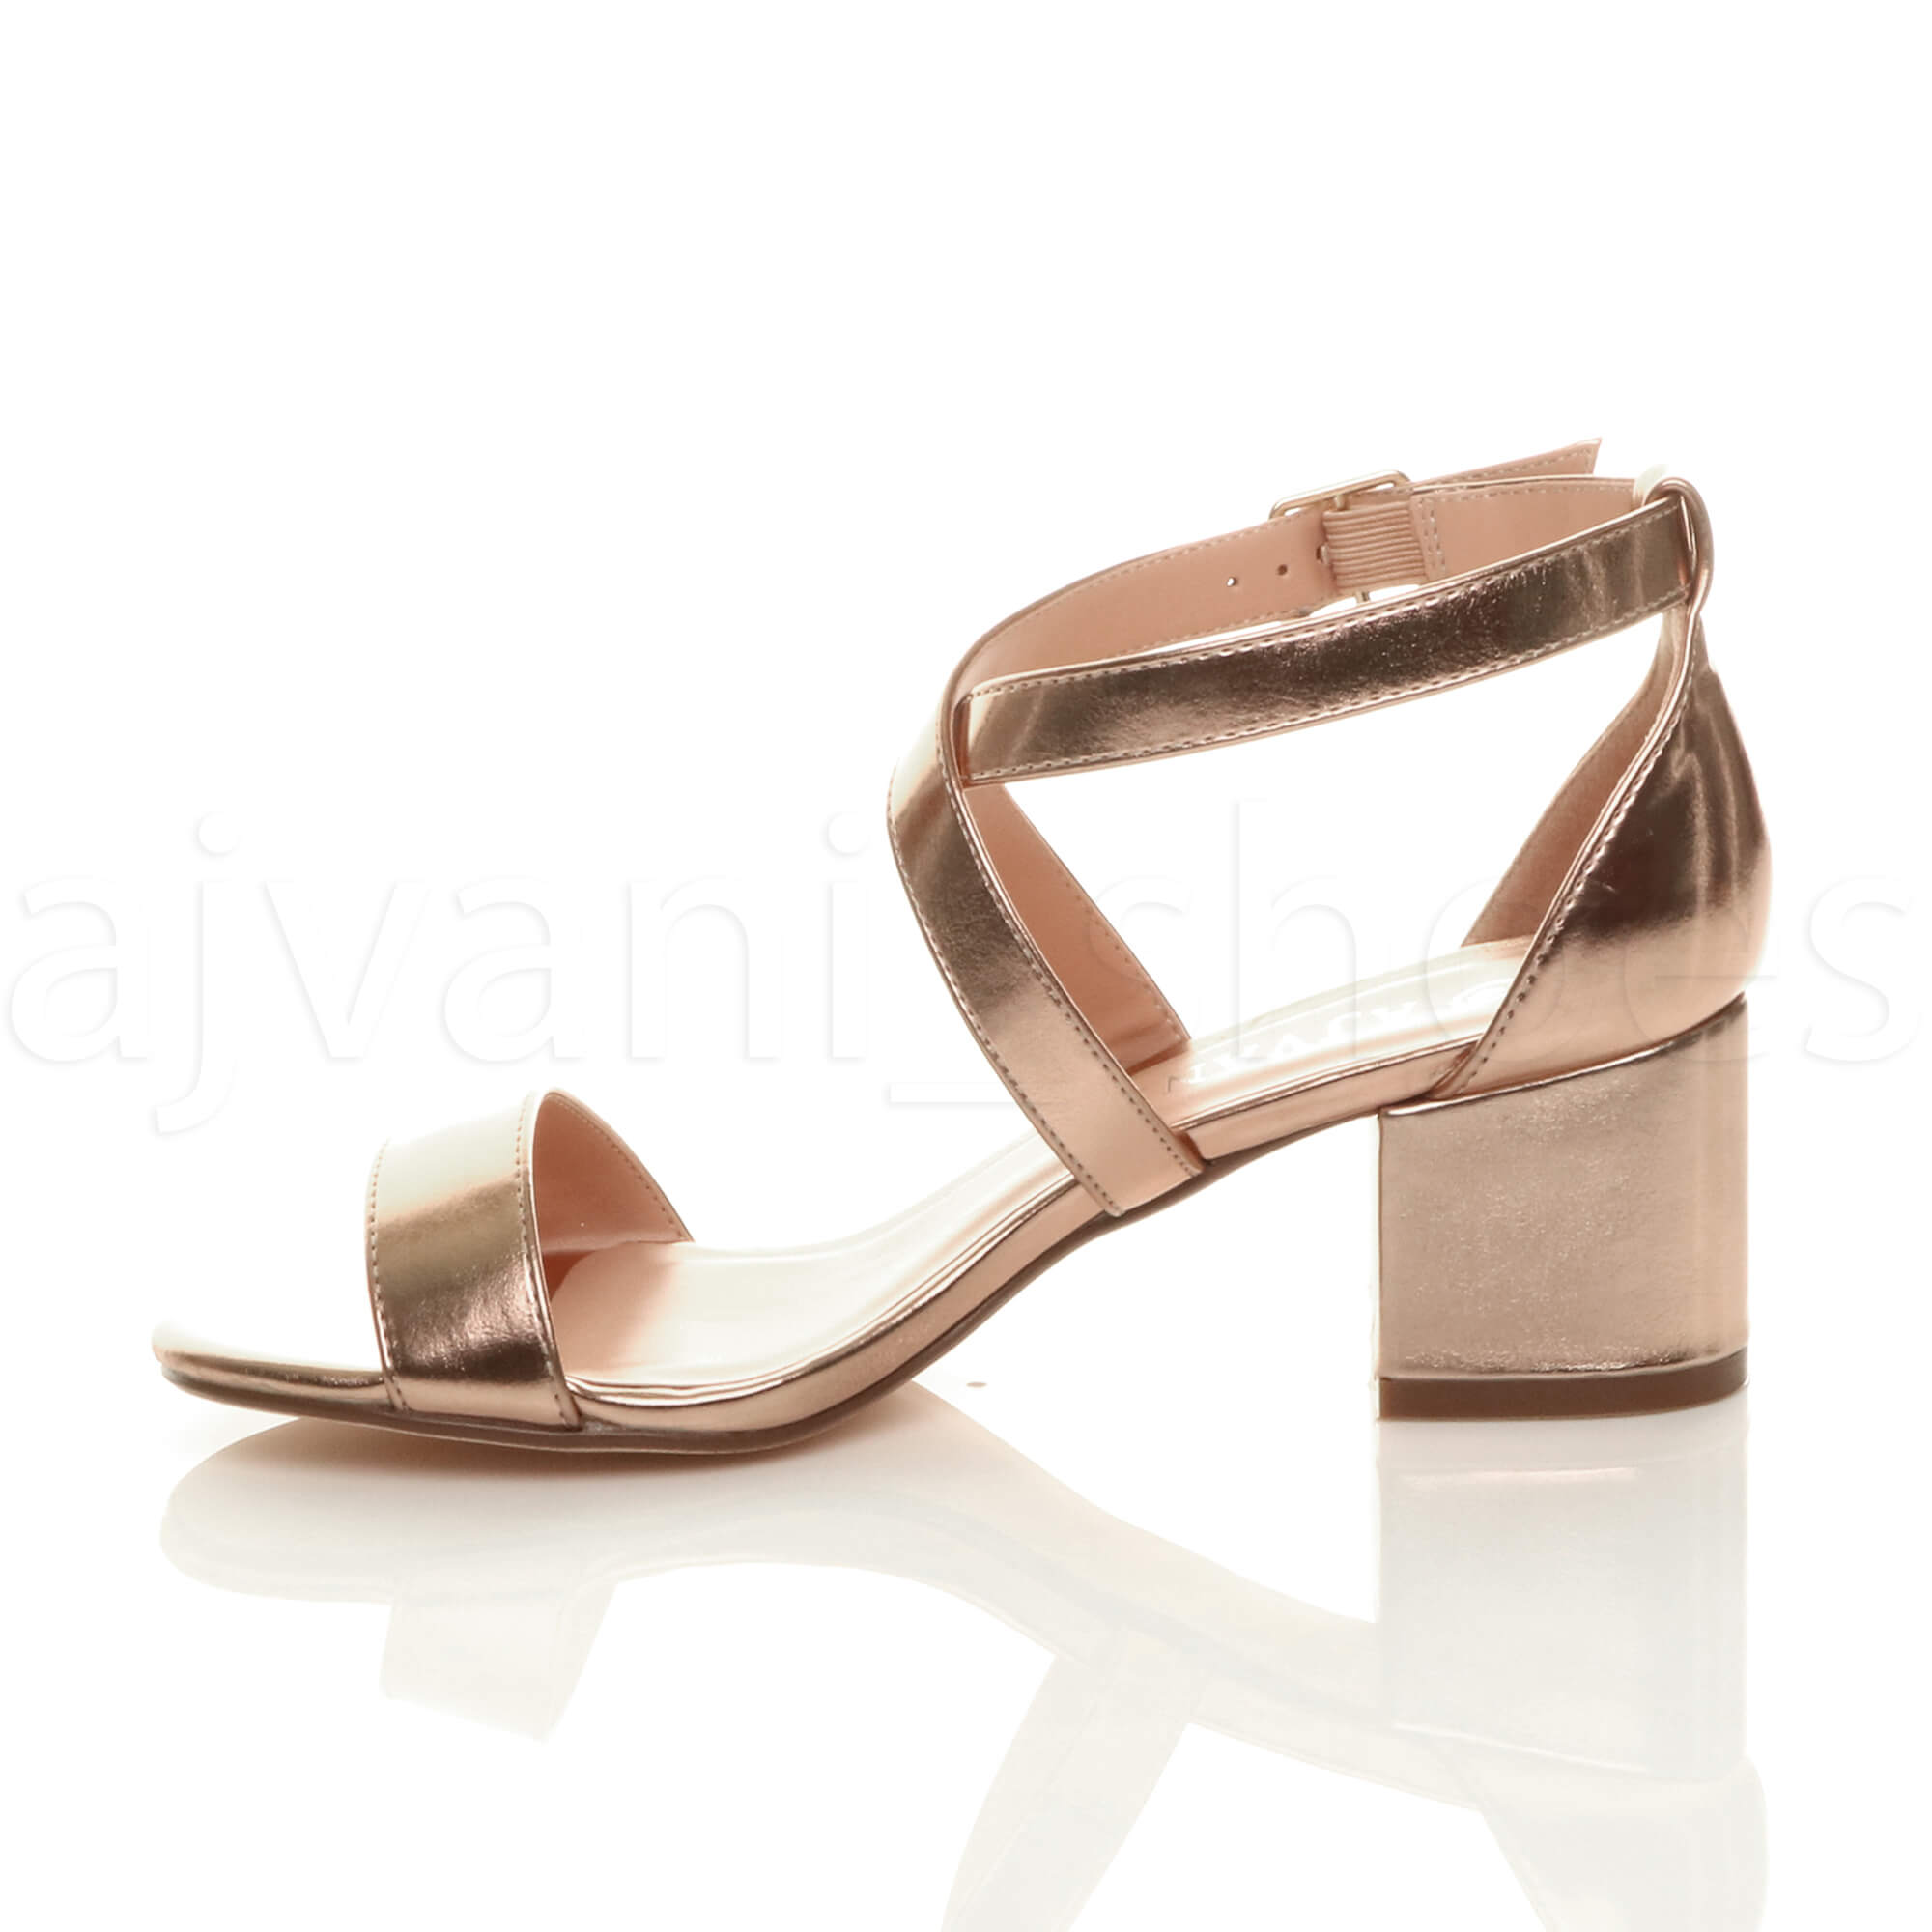 WOMENS-LADIES-MID-LOW-BLOCK-HEEL-CROSS-STRAPS-PARTY-STRAPPY-SANDALS-SHOES-SIZE thumbnail 71